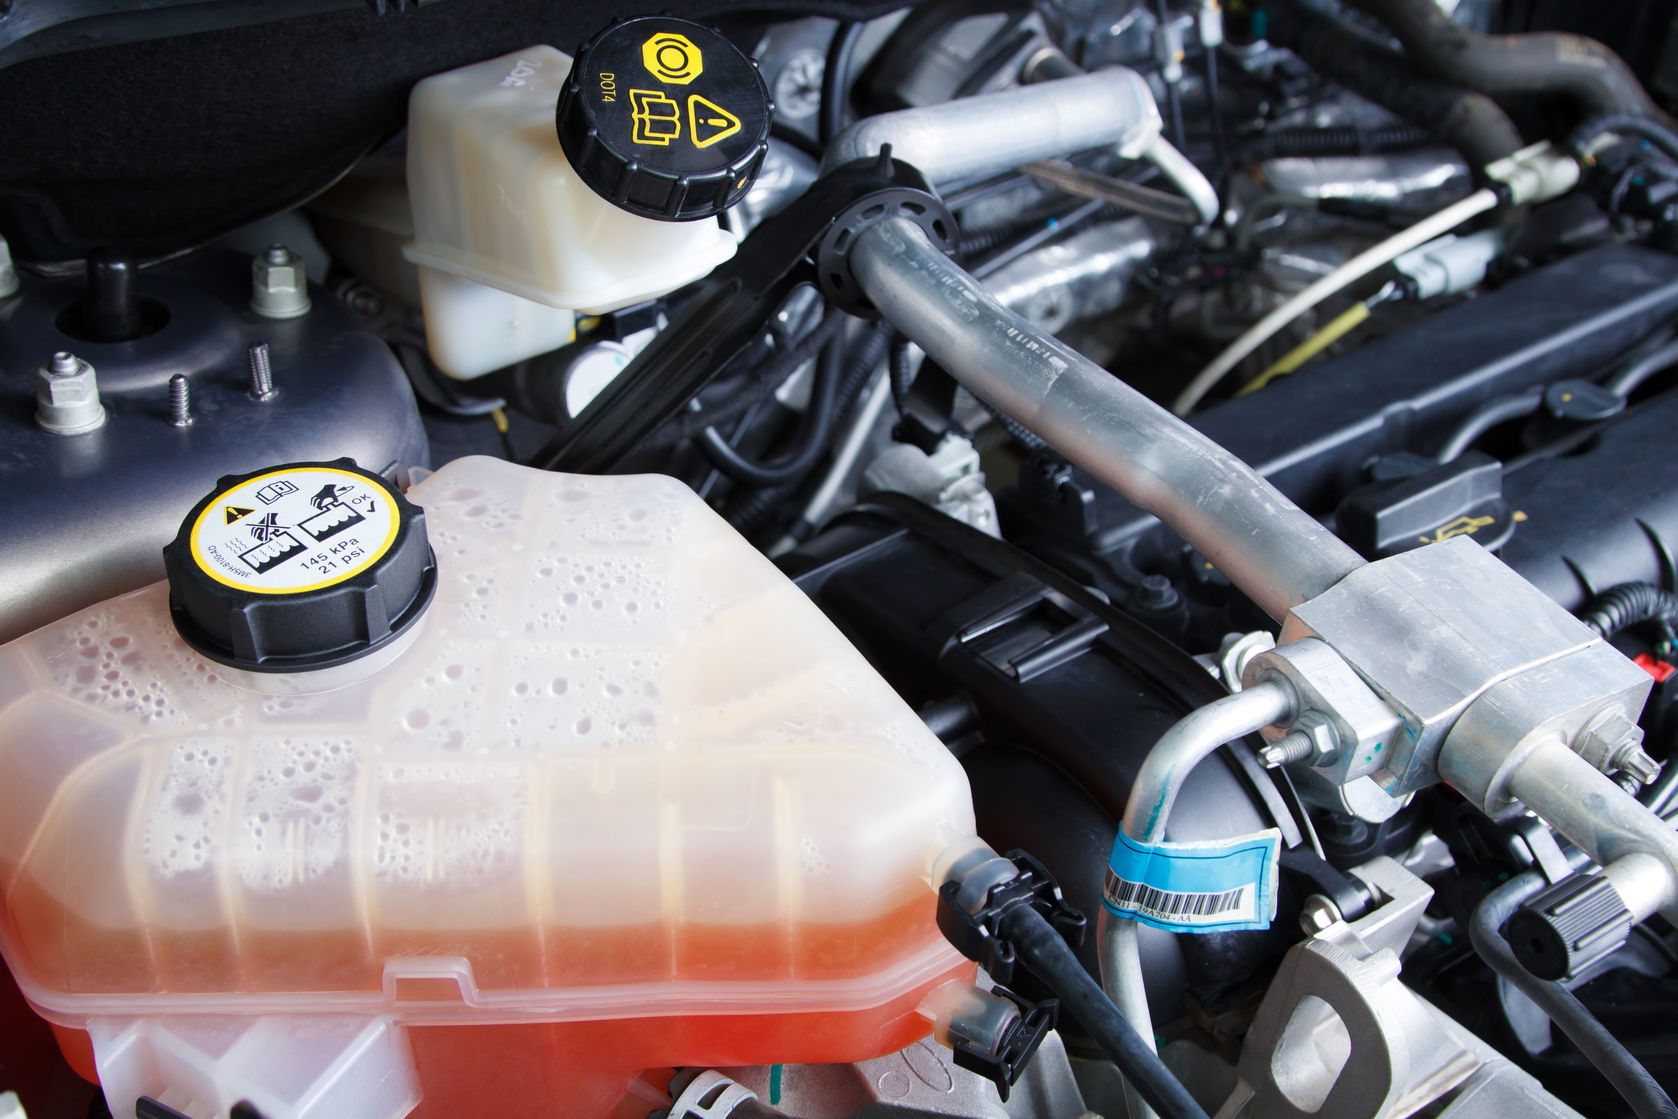 Engine Maintenance, Oil Changes, Fluid Flushes and More - MilitosAutoRepair.com